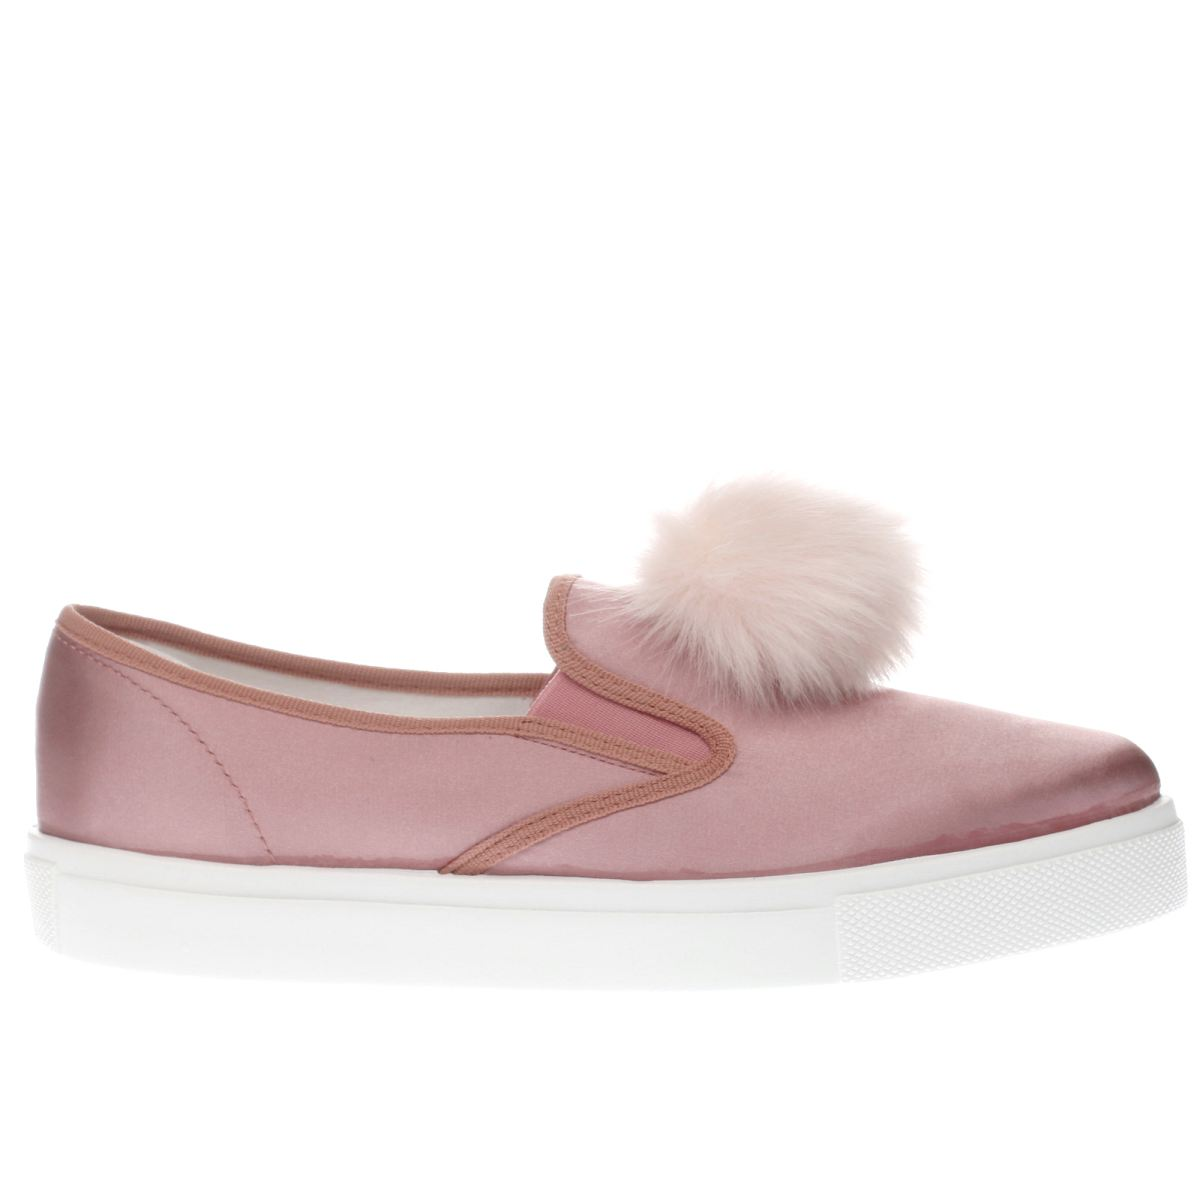 schuh Schuh Pink Awesome Pom Pom Flat Shoes